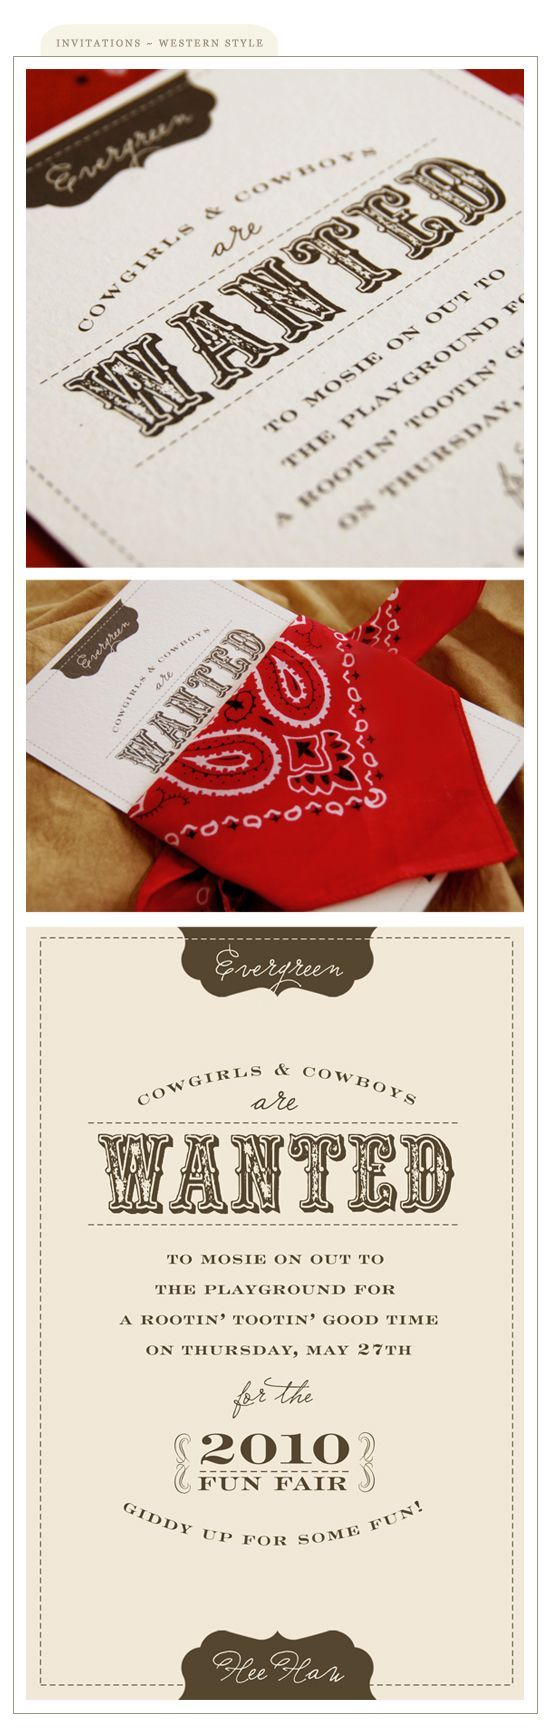 cowboy themed birthday invitation  (Ann Marie this made me think of P)